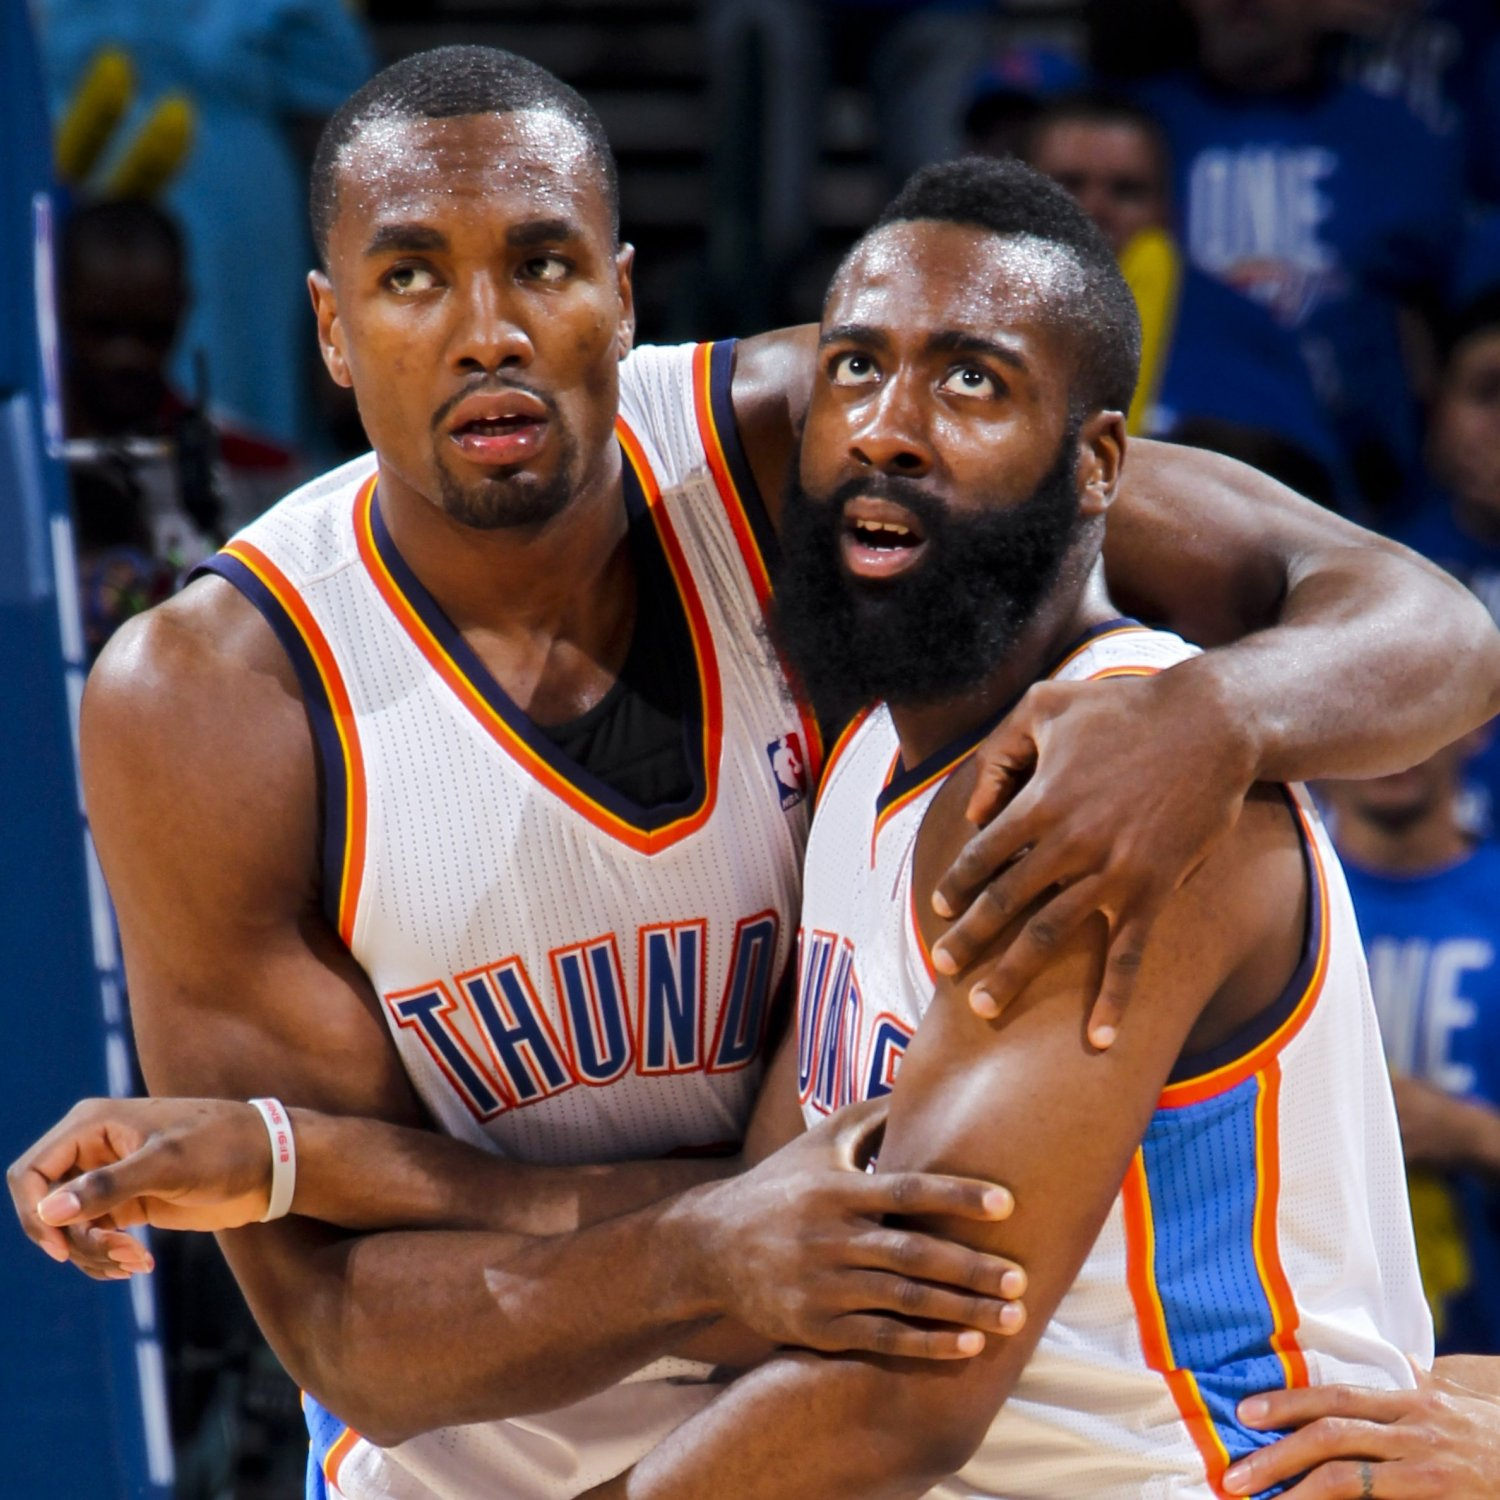 James Harden Free Agency: NBA Rumors: OKC Thunder Should Focus On Keeping Serge